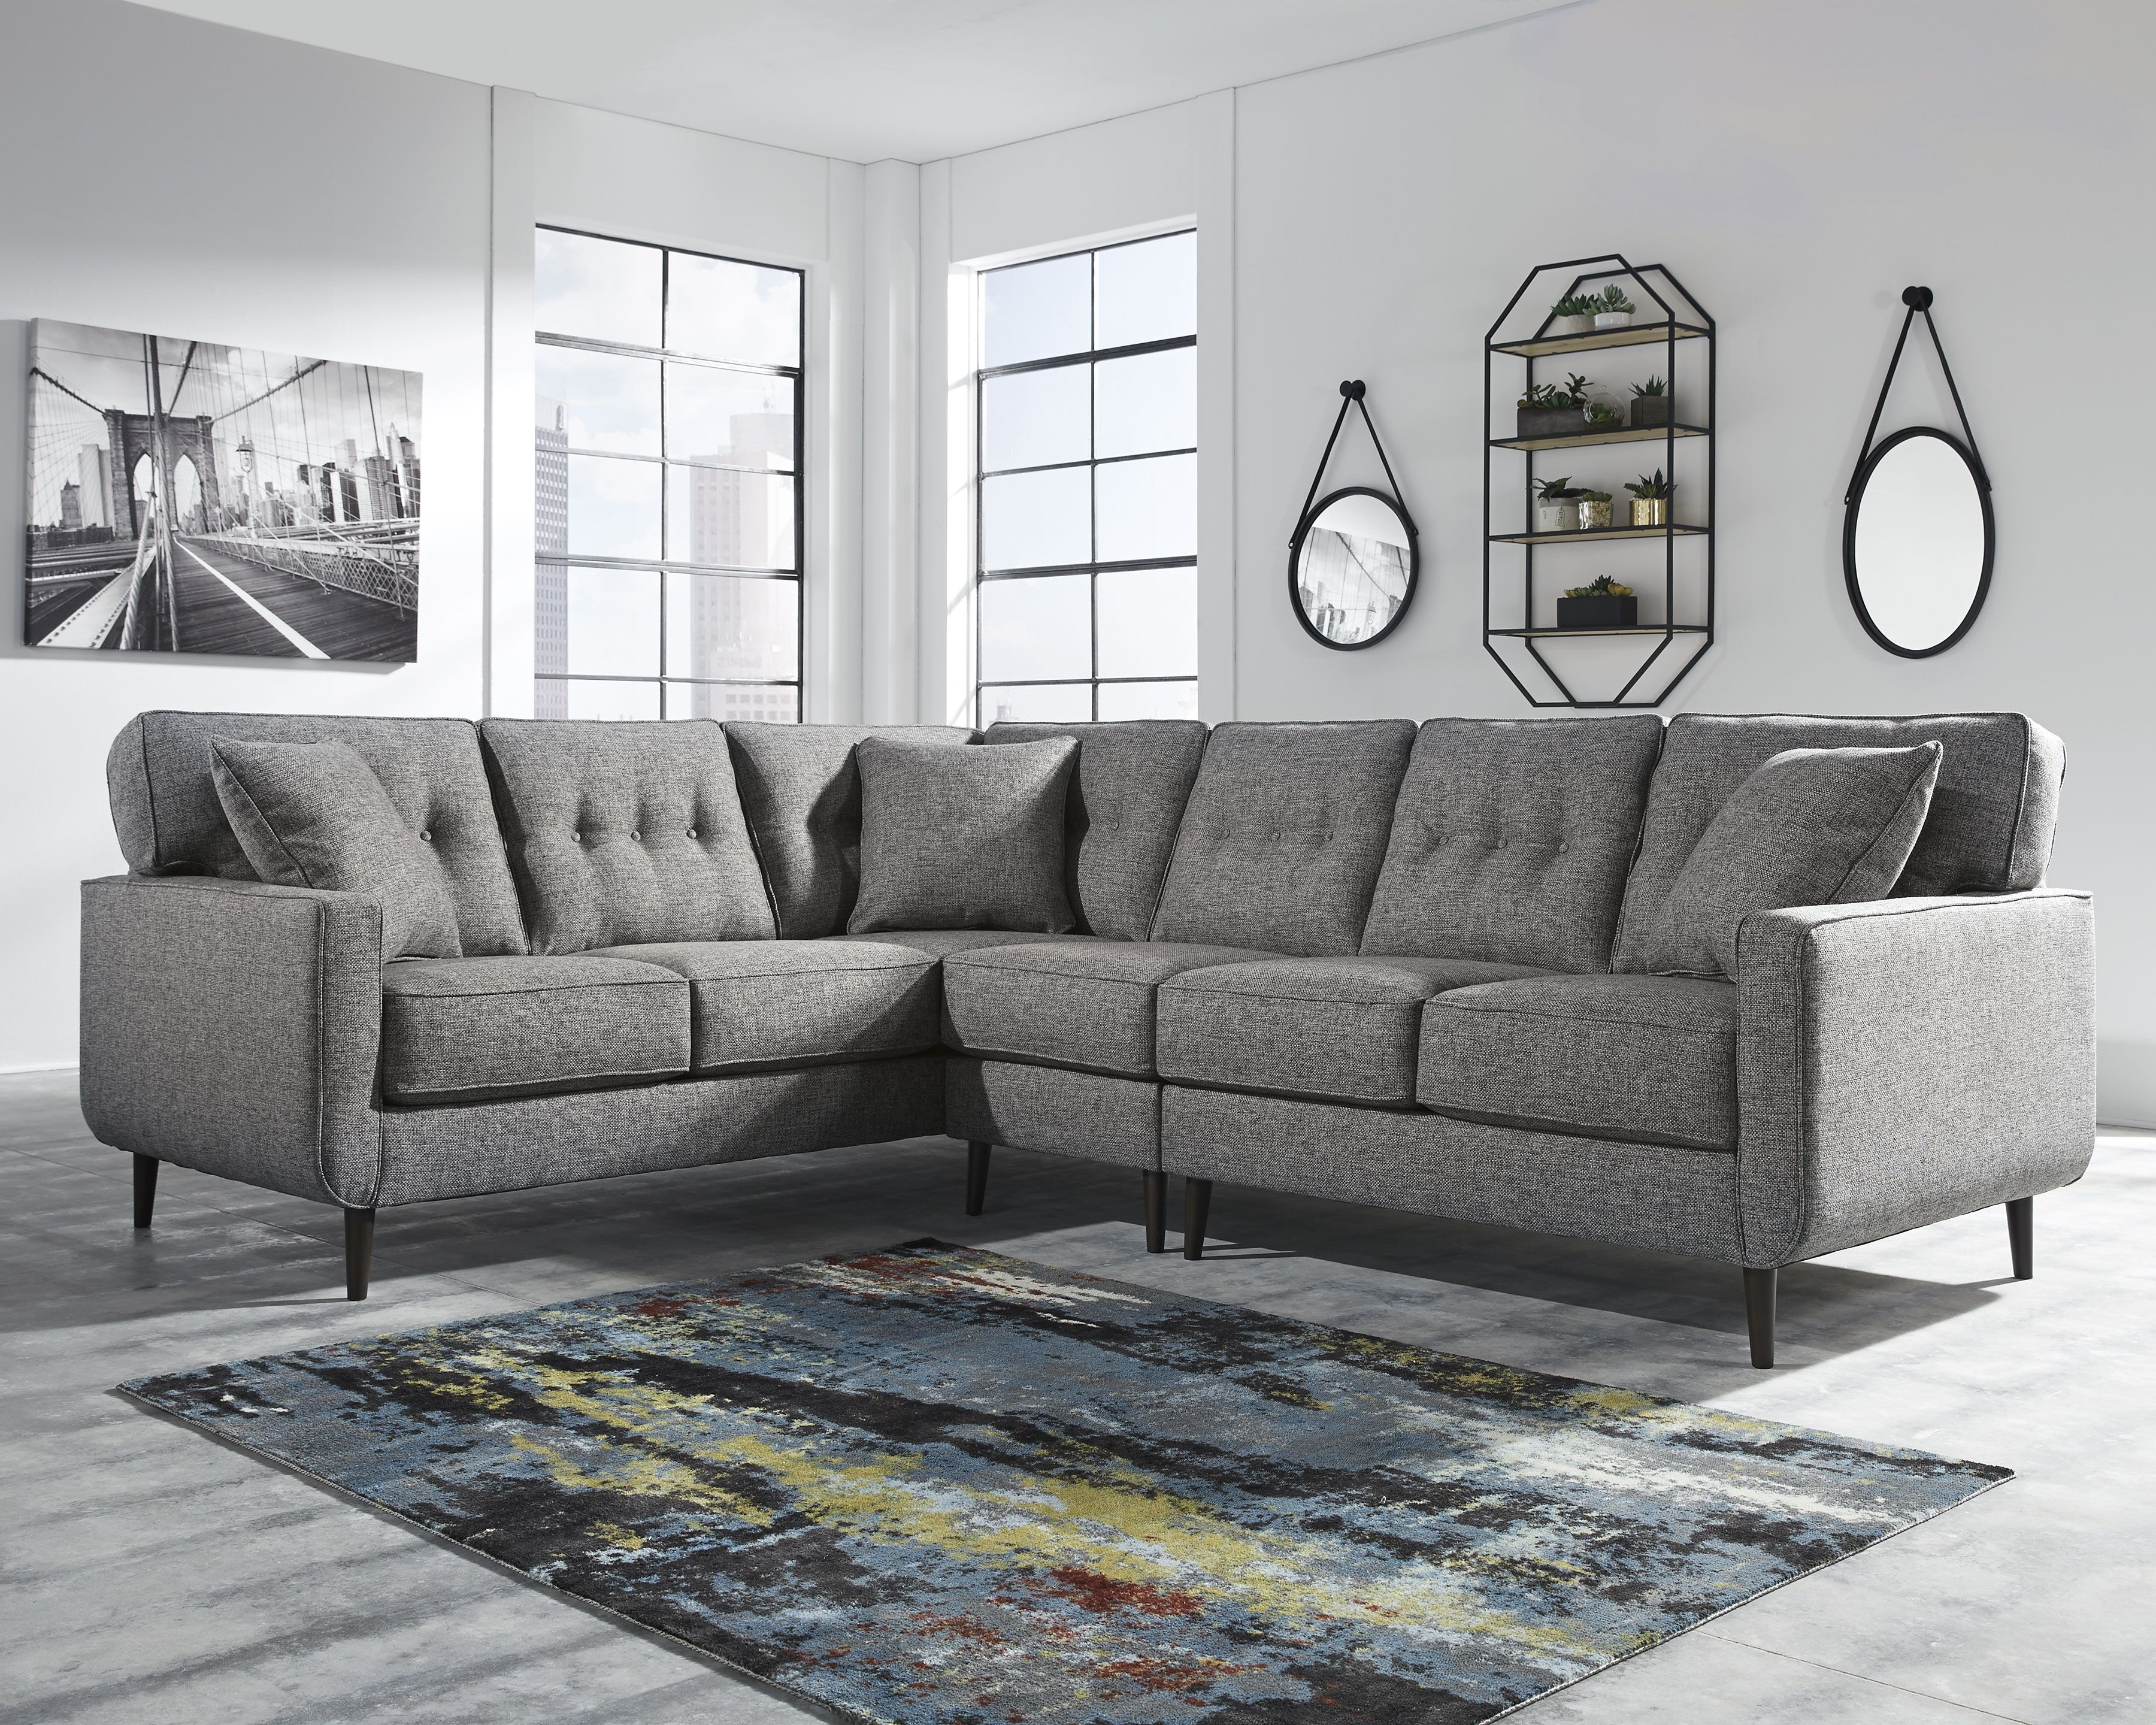 Zardoni 3 Piece Sectional Charcoal Furniture Ashley